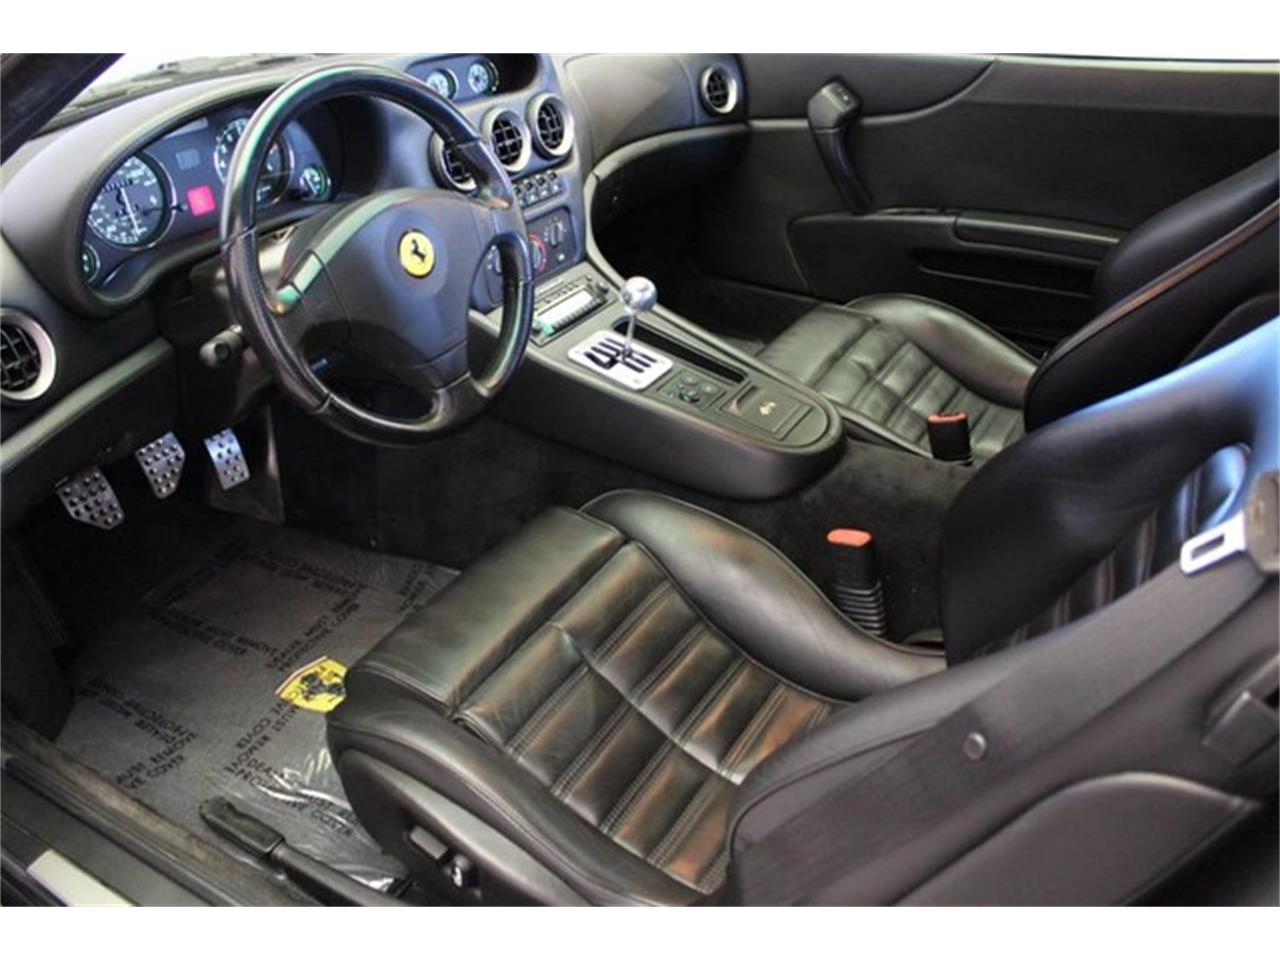 Large Picture of 2000 Ferrari 550 Maranello located in Anaheim California - $139,900.00 Offered by DC Motors - JKZ6